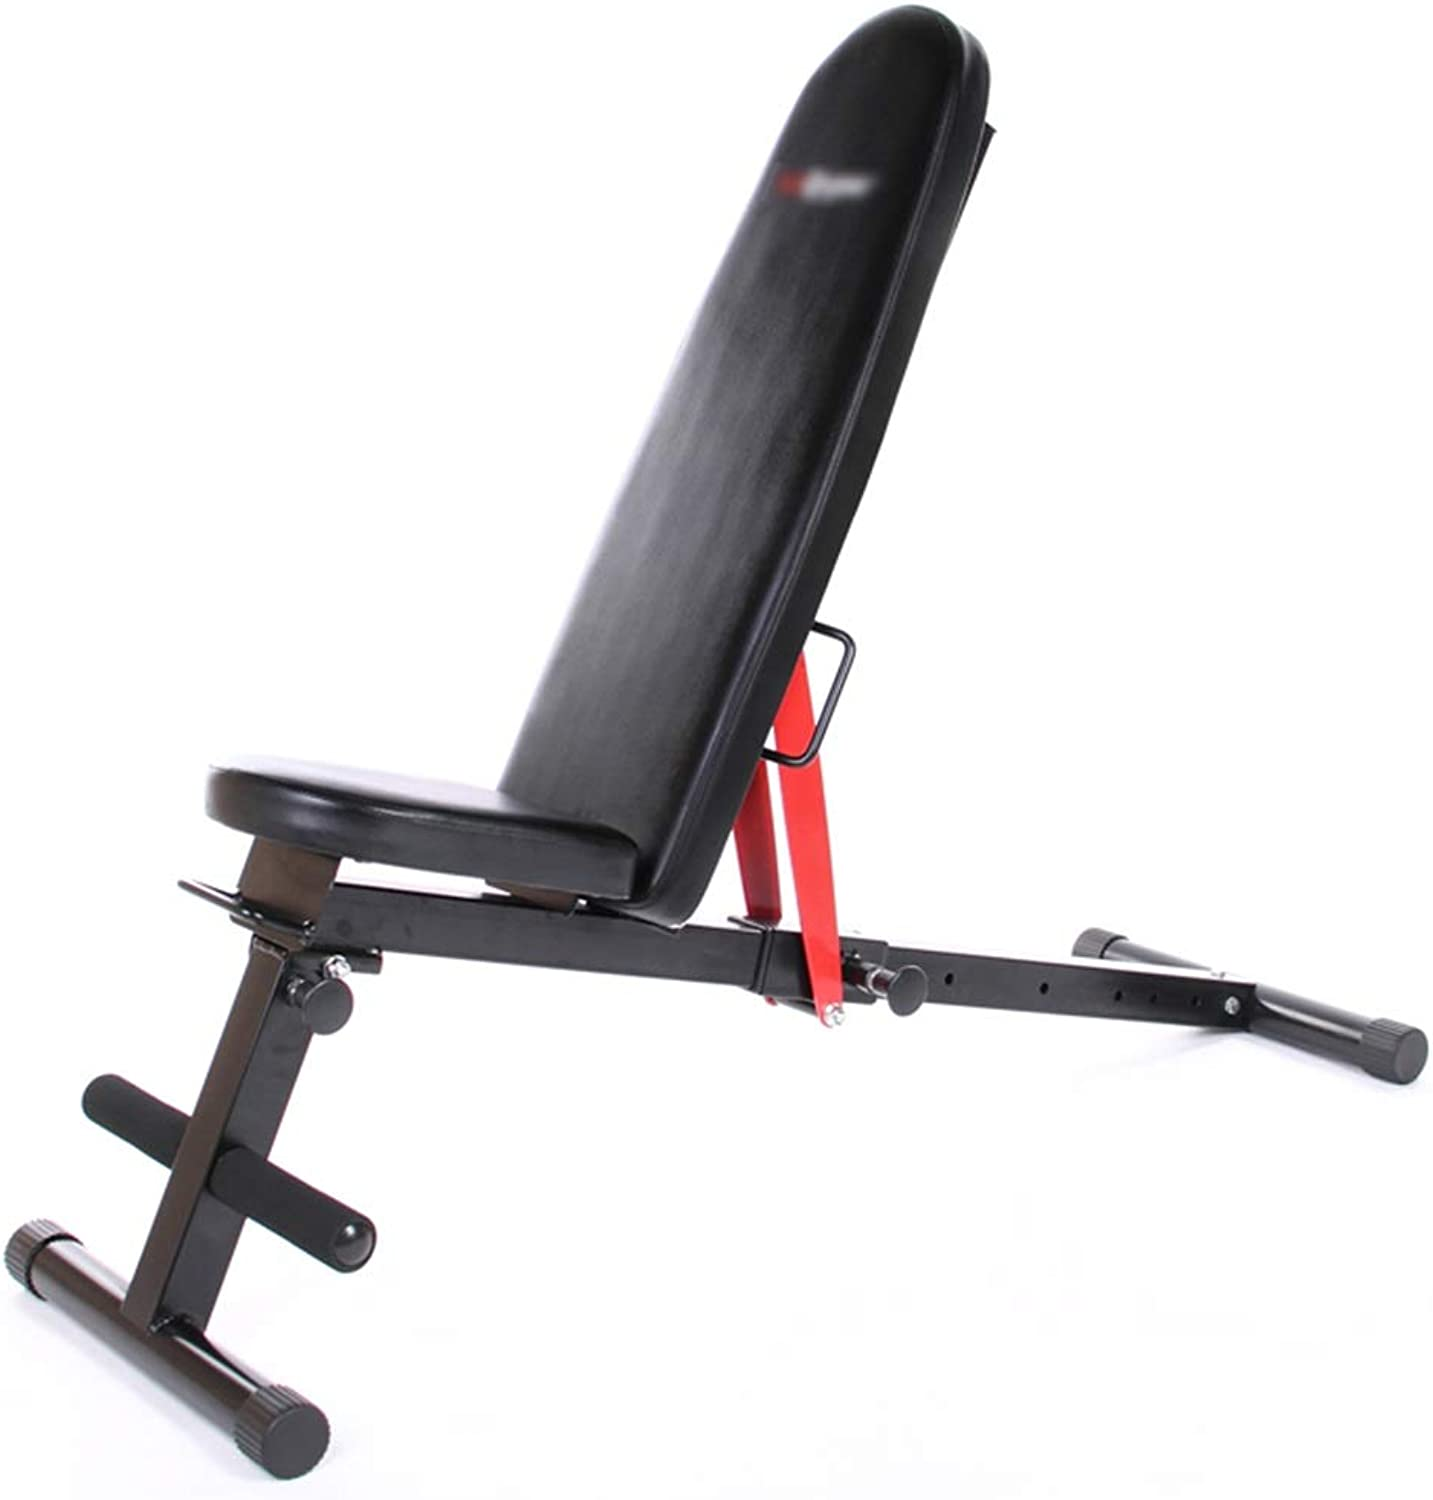 Adjustable Benches Situp Board Dumbbell Bench Situps Adjustable Bench Multifunctional Fitness Folding Abdominal Board Household Bench Press Weight (color   Black, Size   126  46  44cm)